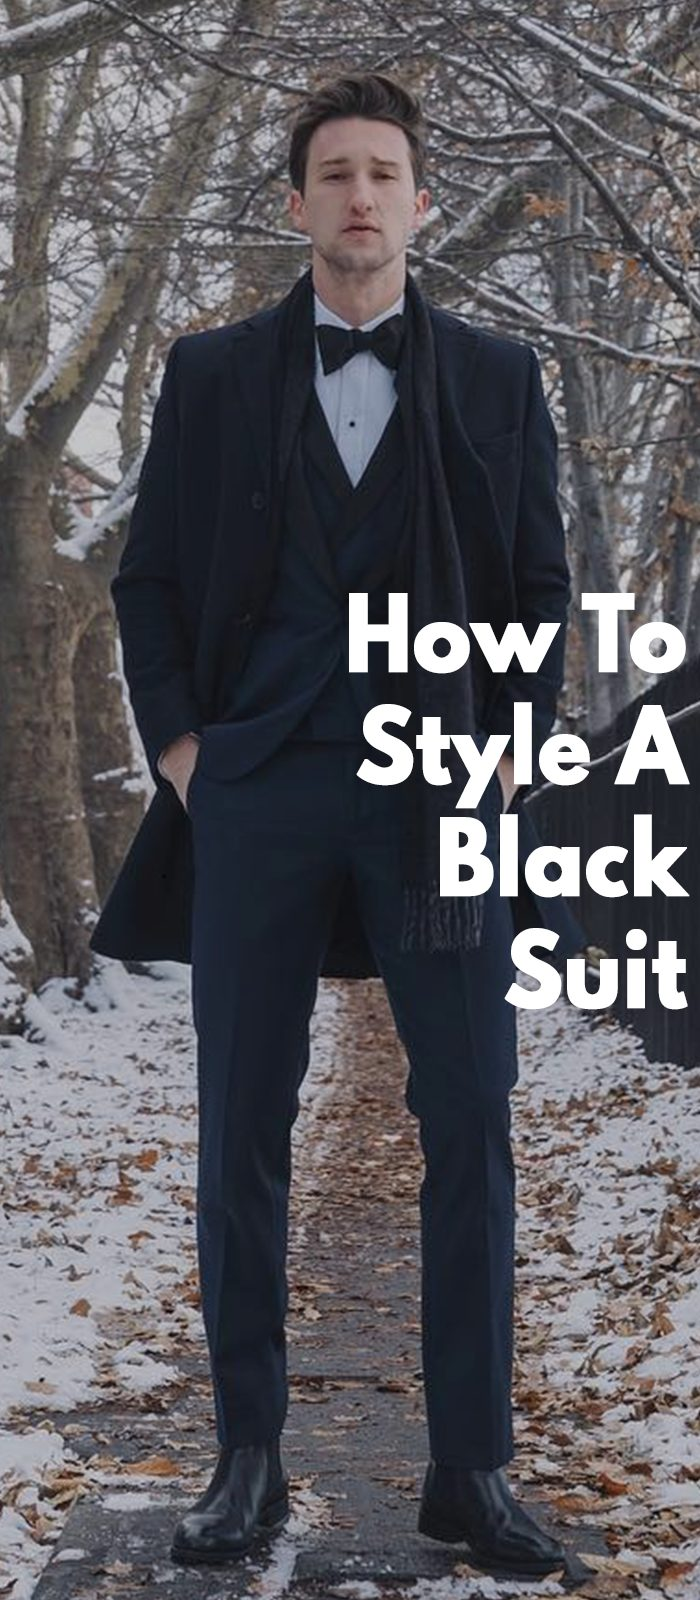 How To Style A Black Suit